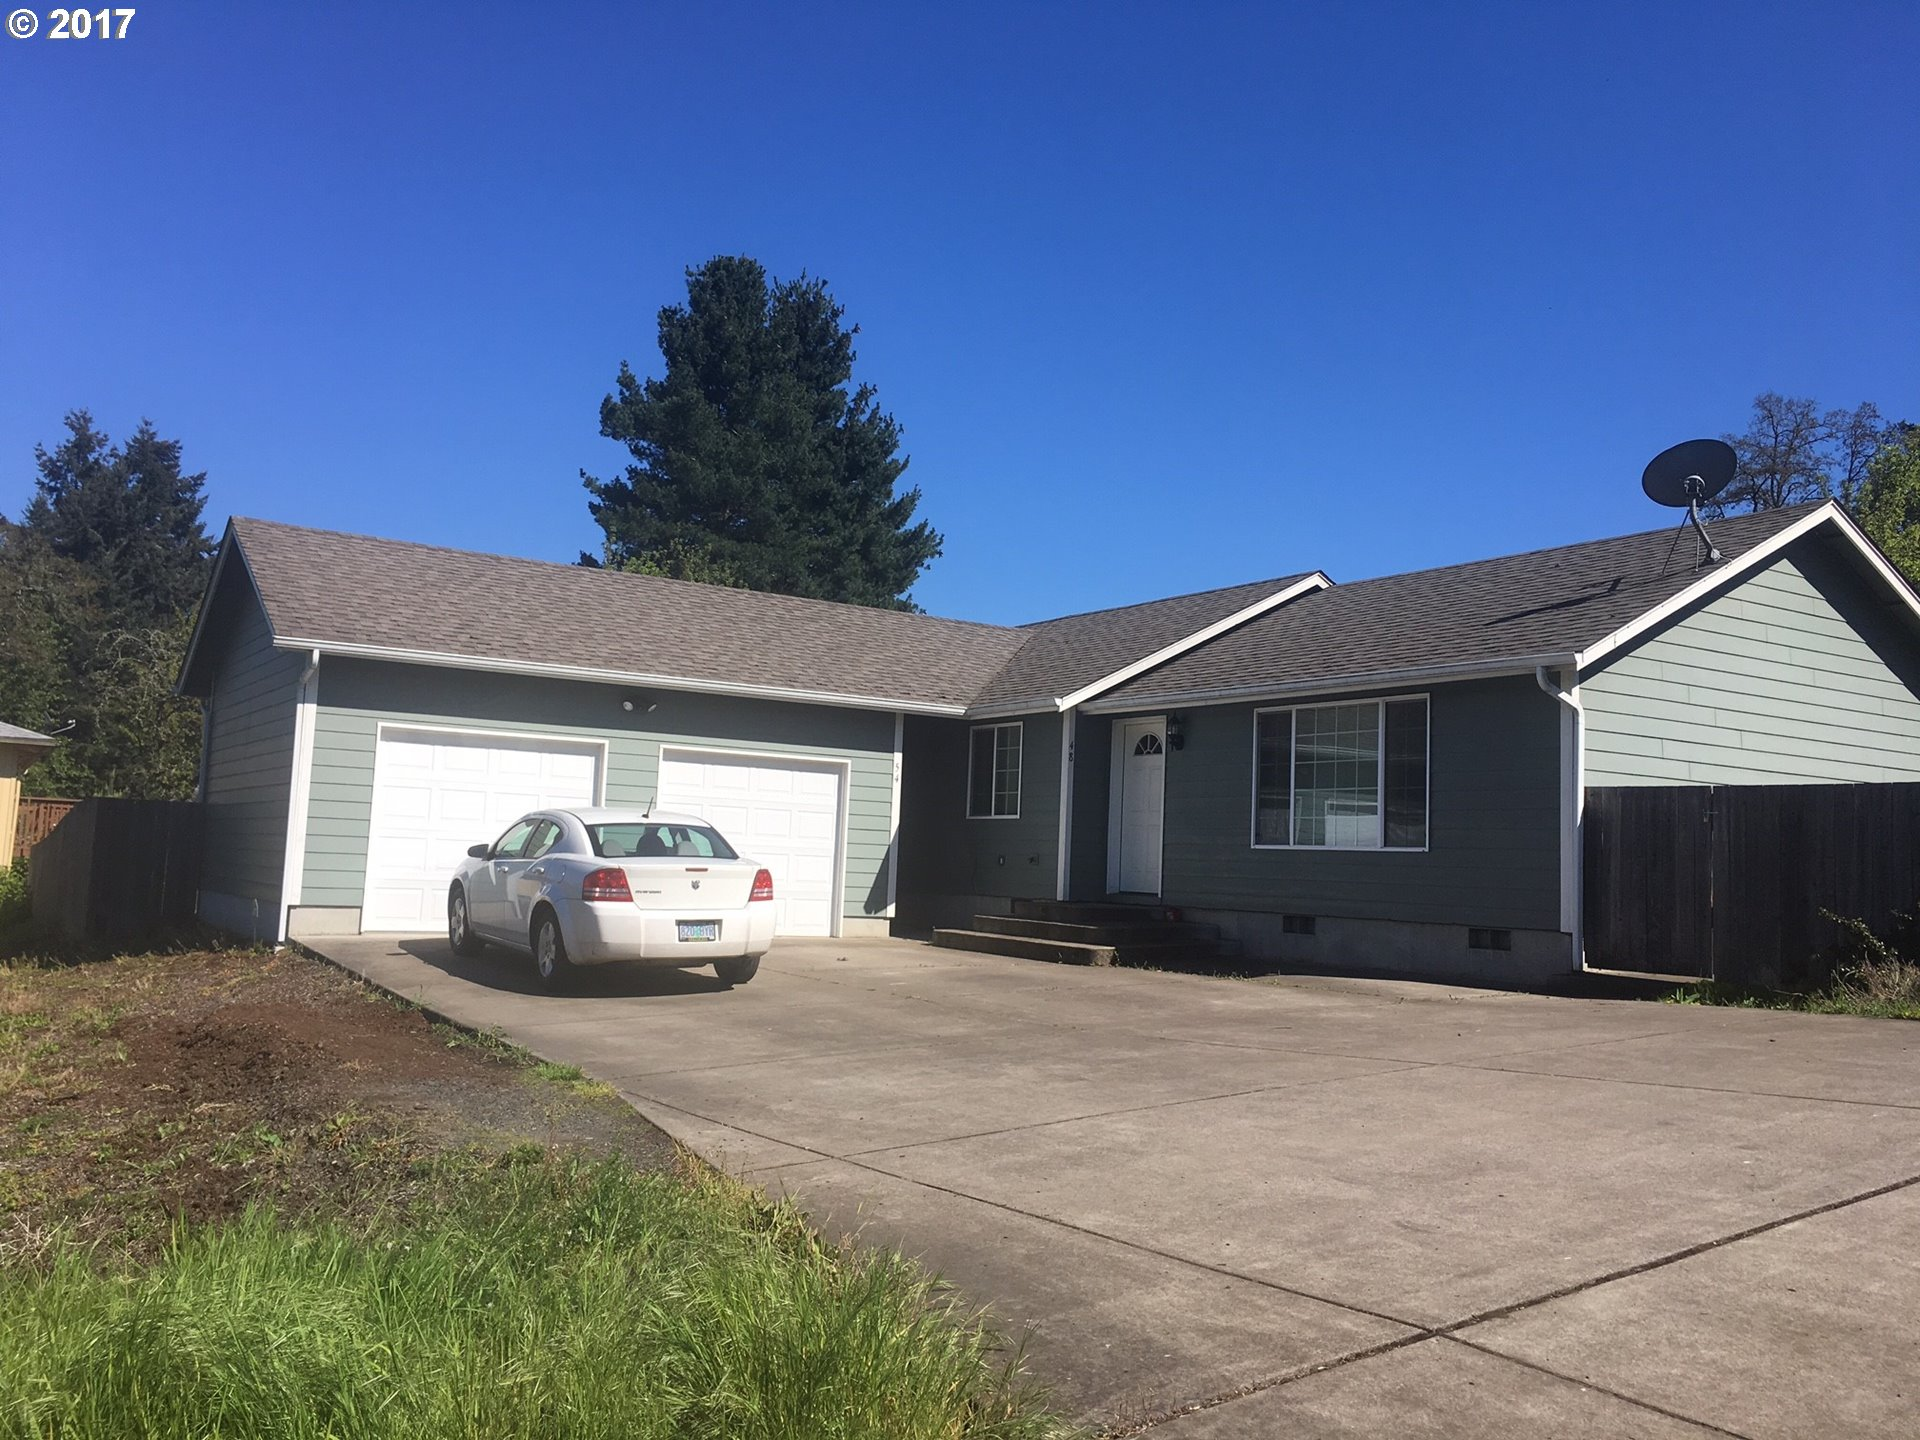 48 N 22ND ST, Cottage Grove, OR 97424